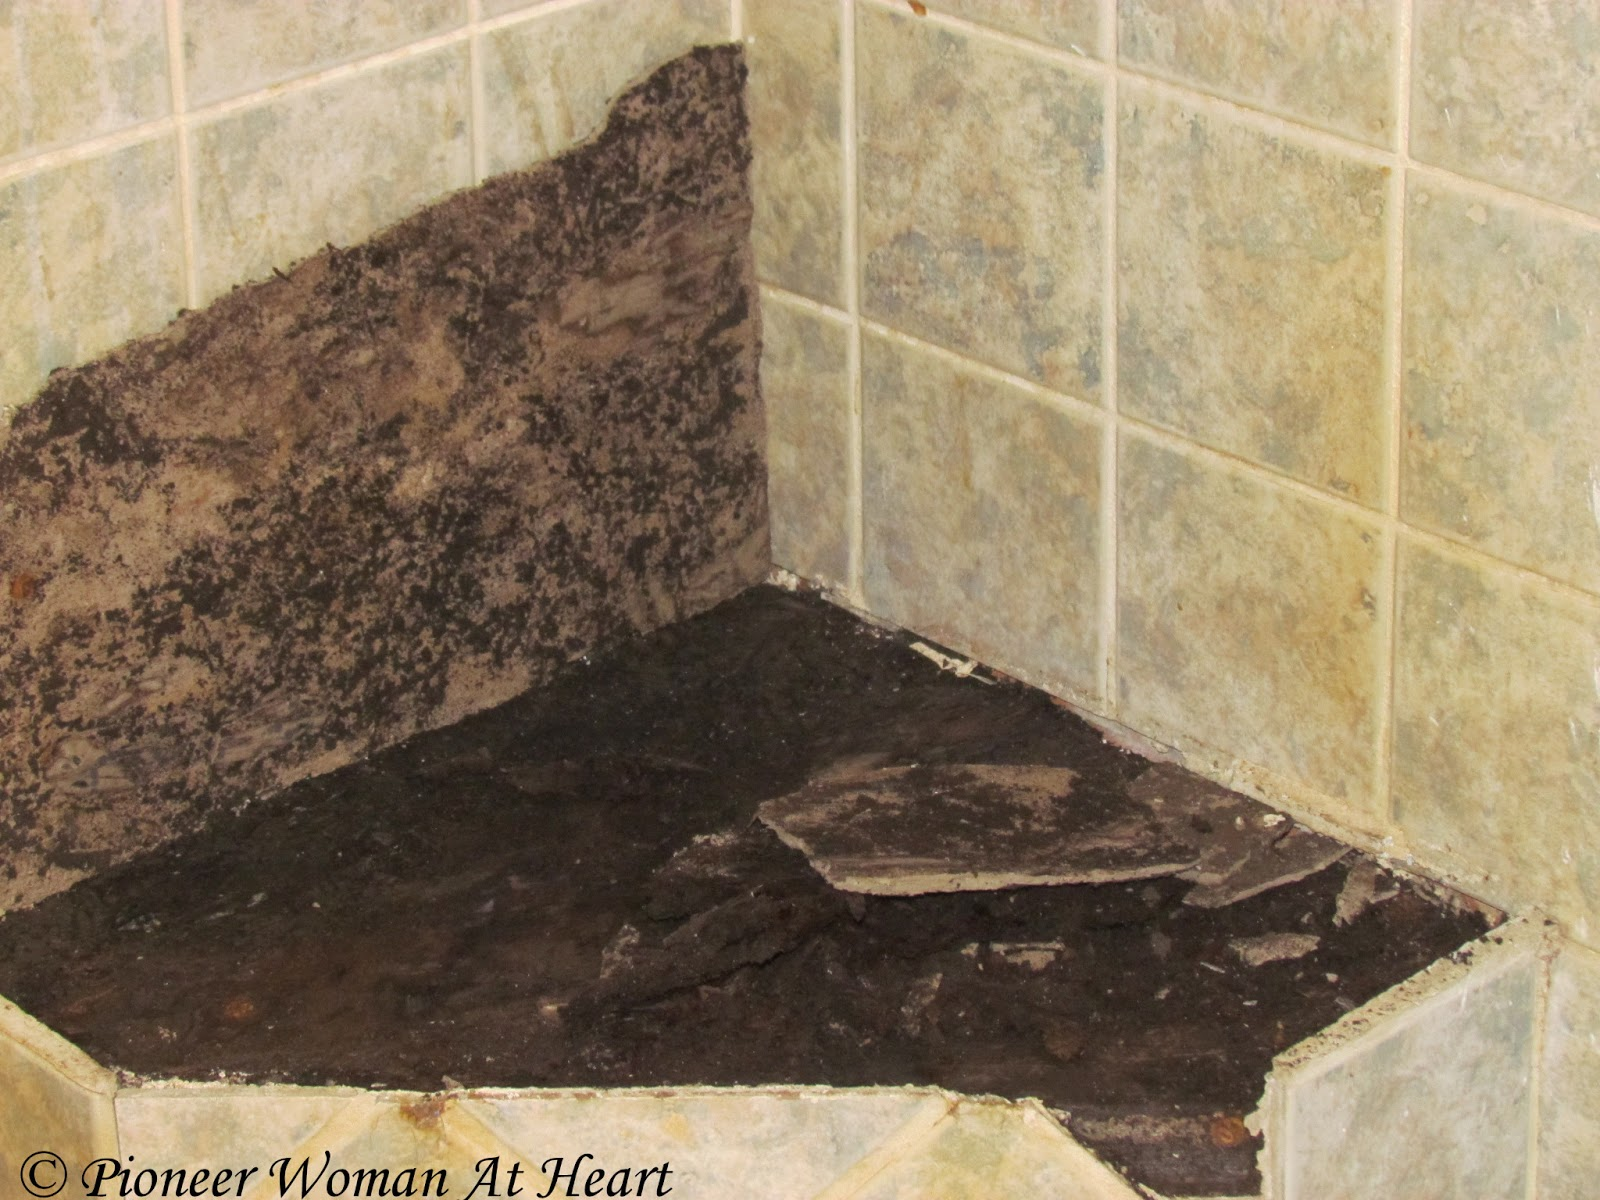 Bathroom Floor Black Mold : Pioneer woman at heart black mold shower project is not